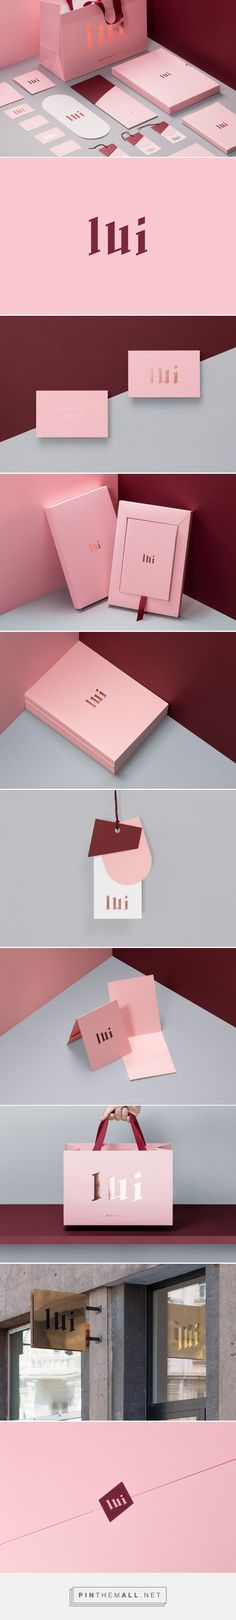 Lui Store Fashion Boutique Branding by Gustaw Dmoswski Web Design, Fashion Logo Design, Fashion Branding, Collateral Design, Brand Identity Design, Graphic Design Branding, Brand Design, Branding Agency, Business Branding